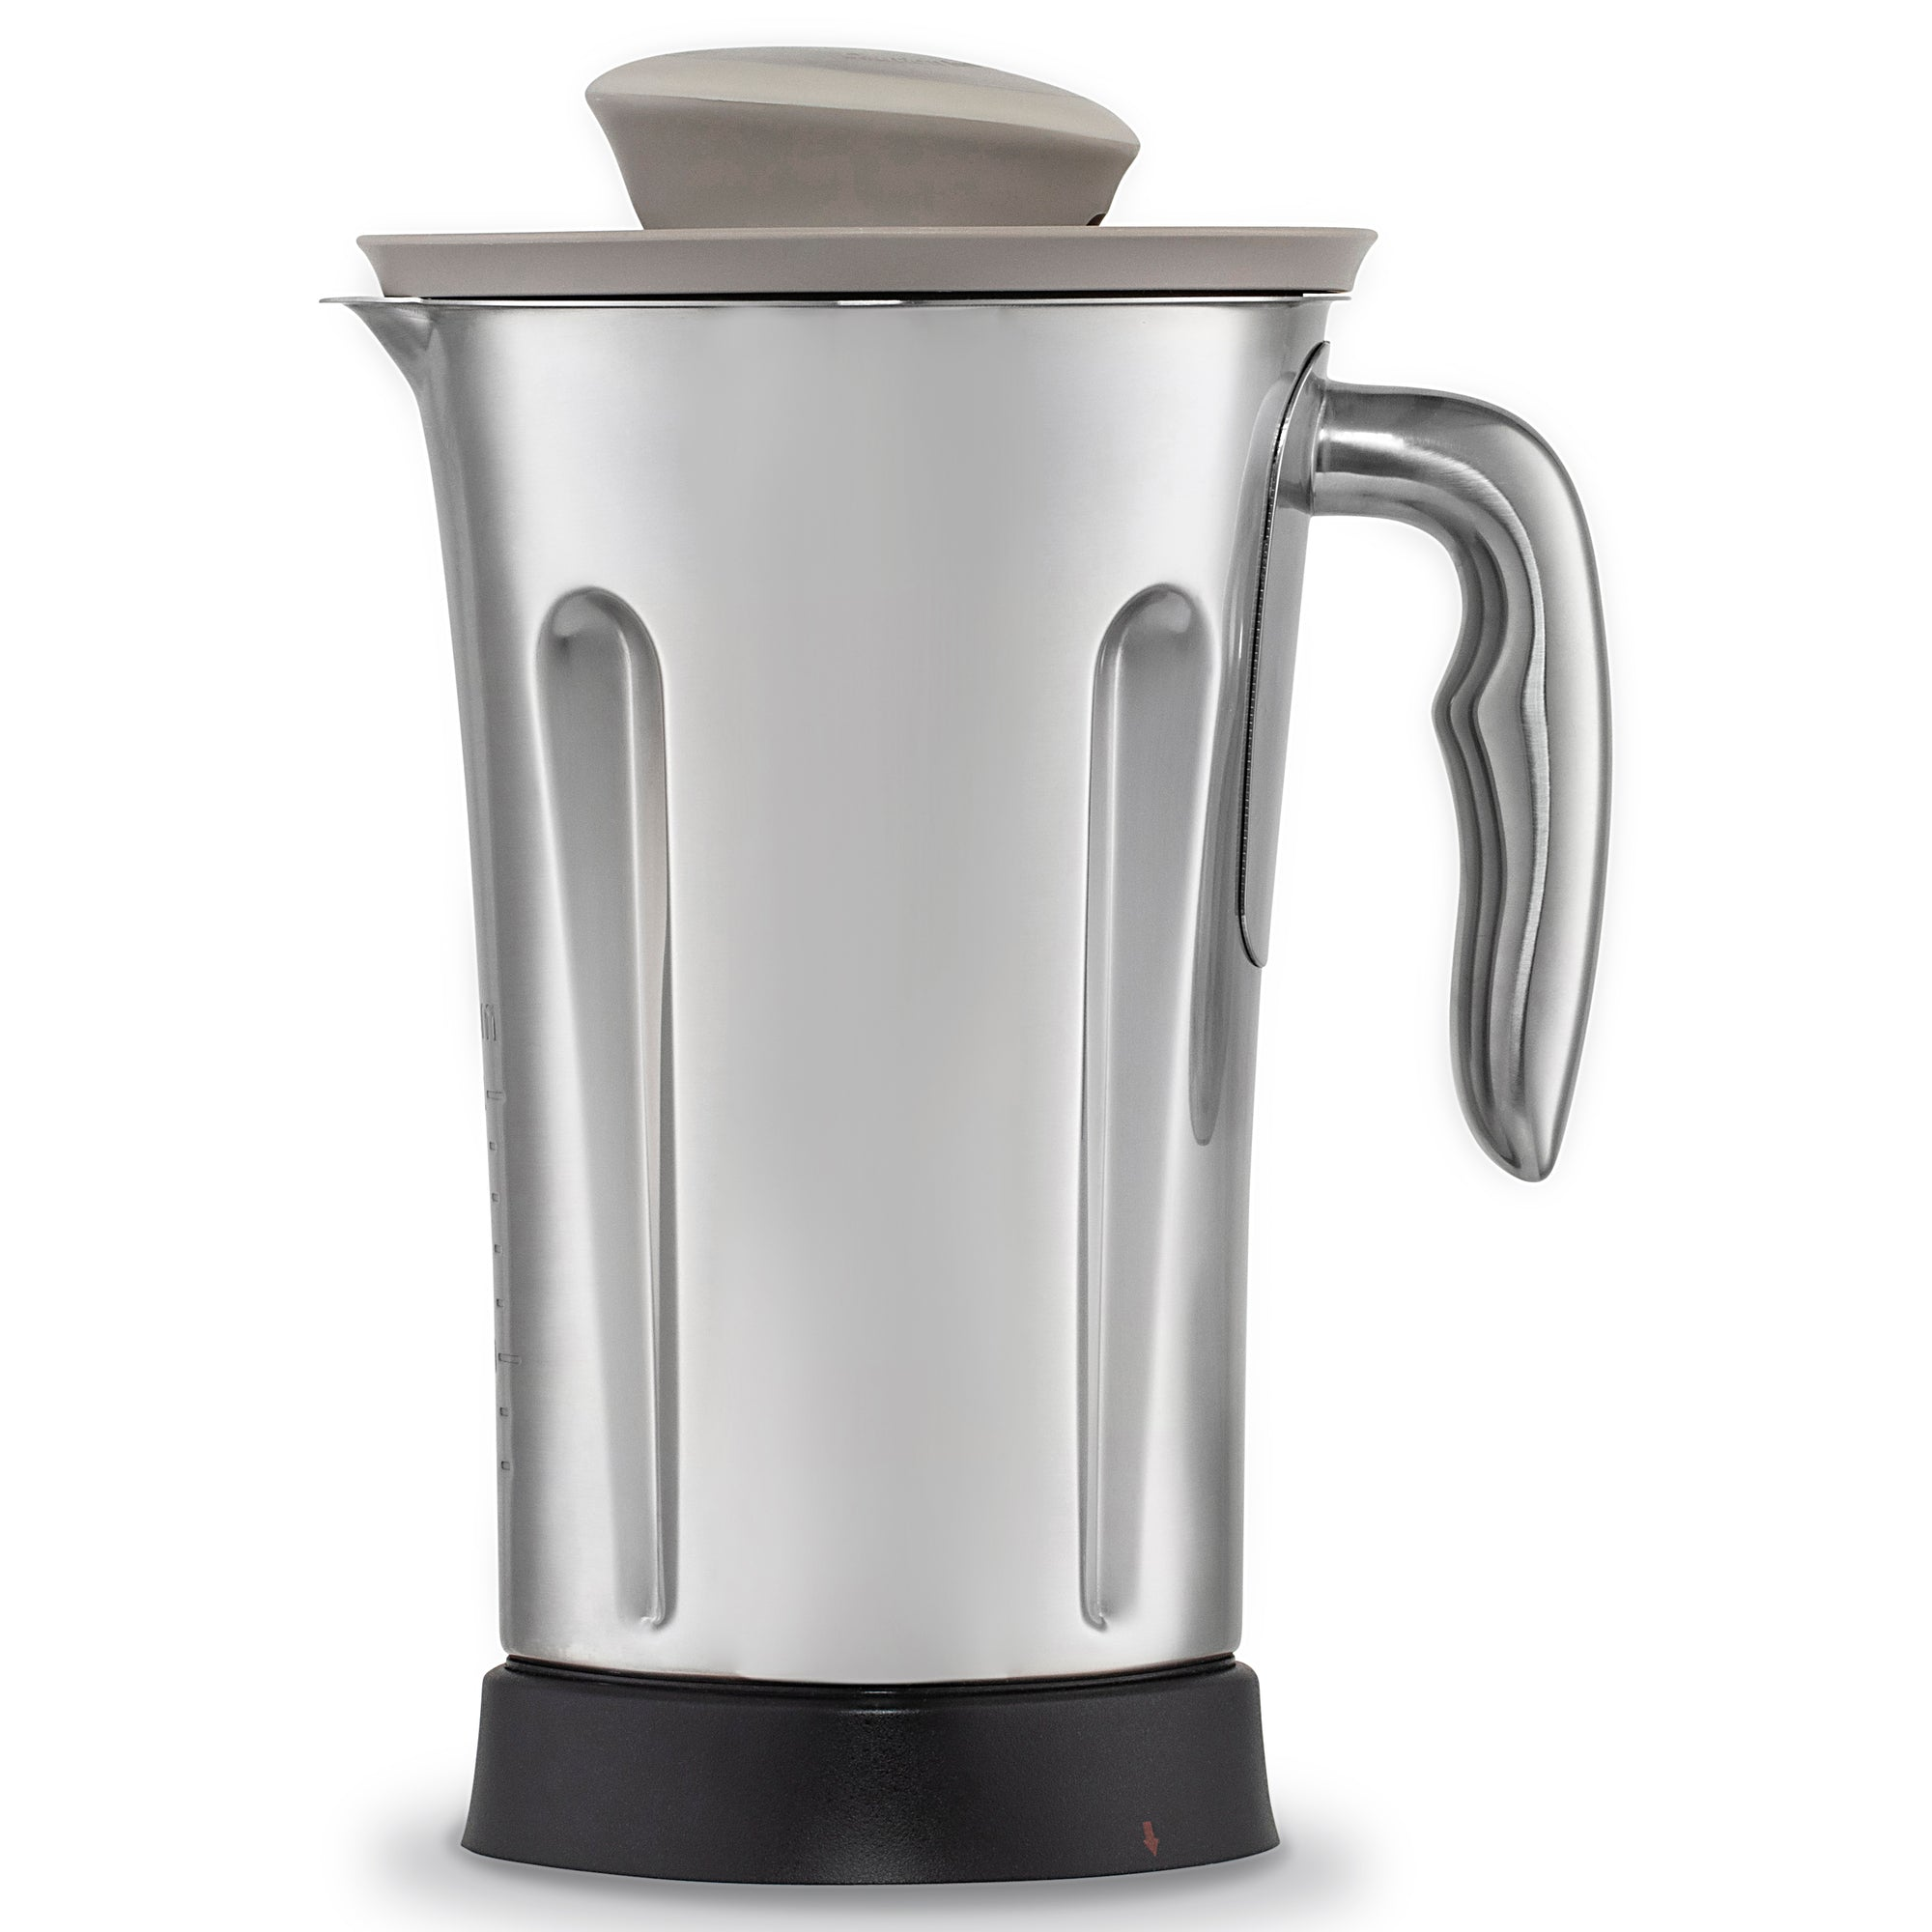 Luvele, Replacement Stainless Steel Vibe Blender Jug 1.75L,Blender